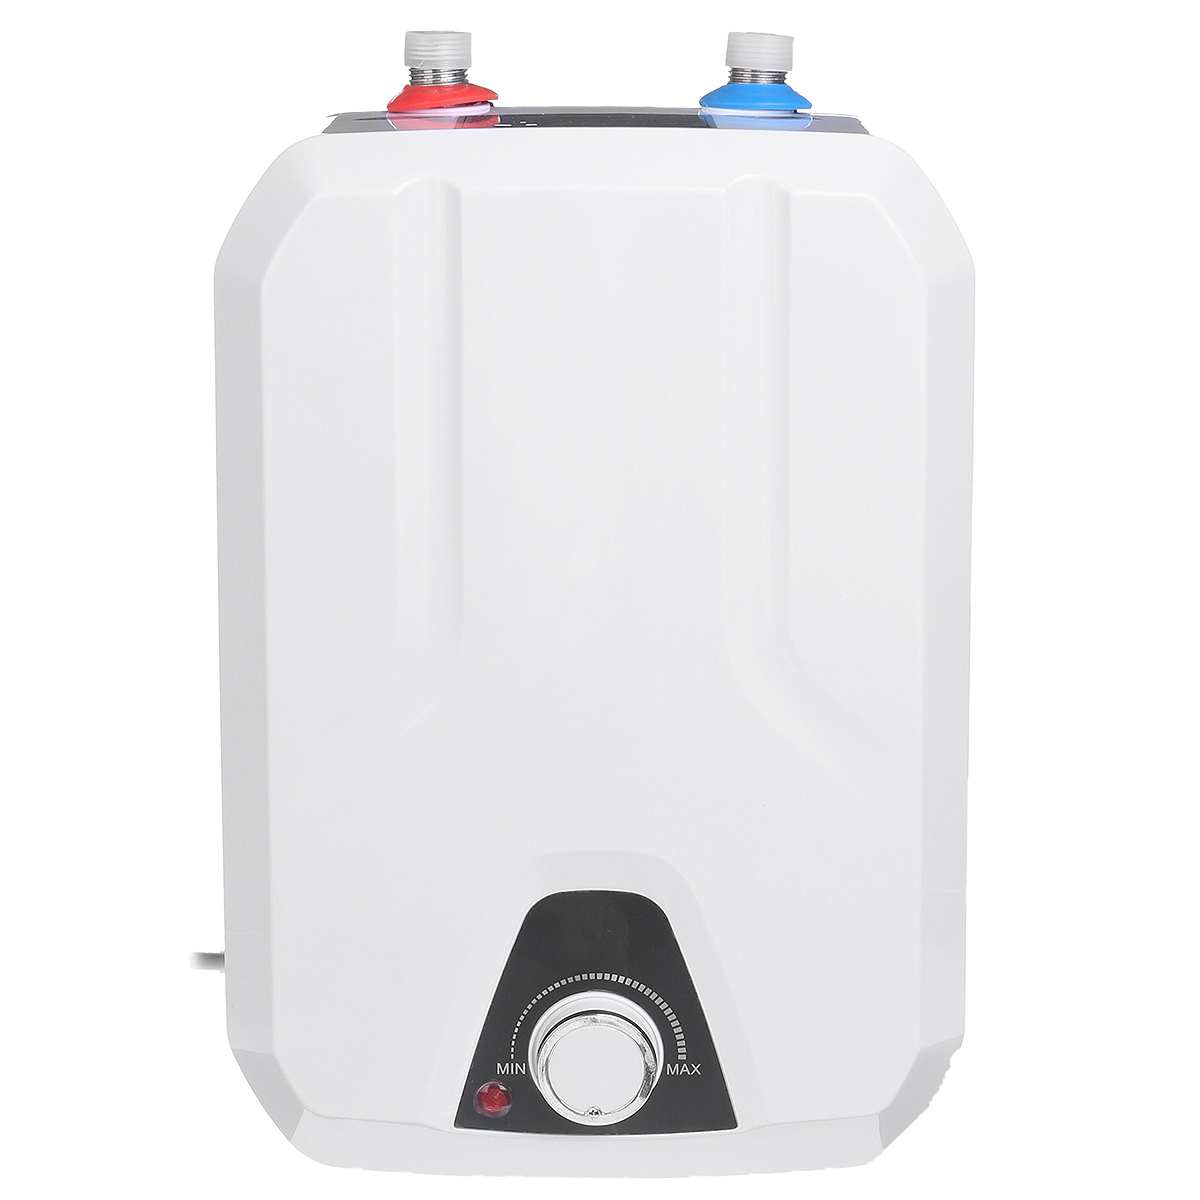 8L Electric Rapid Hot Water Storage Tank Heater 1500W 110V Household Bathroom Induction Shower Vertical Type Solar Heater Backup